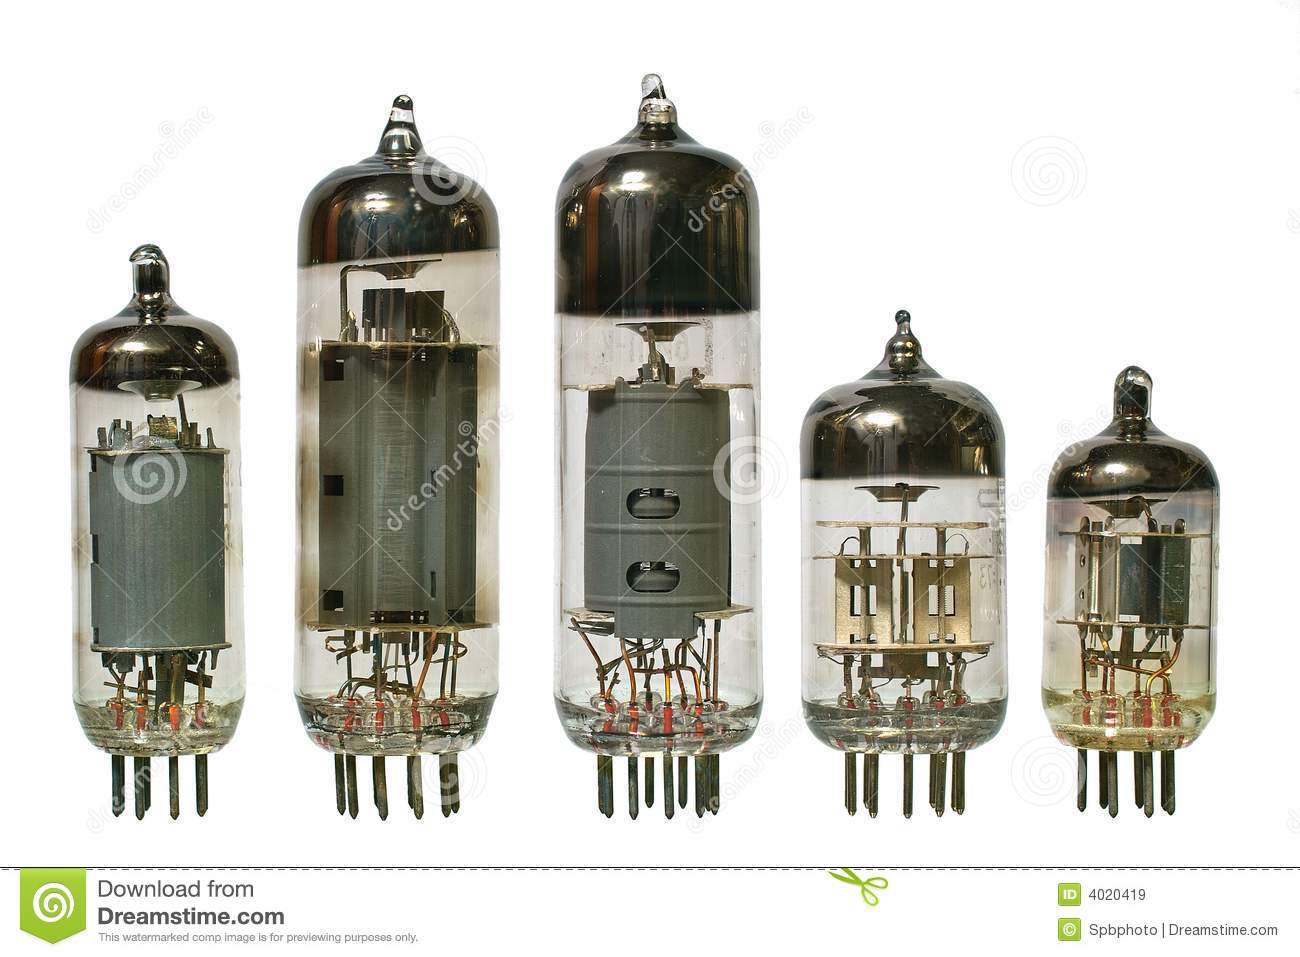 Royalty Free Stock Images Old Vacuum Radio Tubes Front View Image4020419 on vintage transistor radios